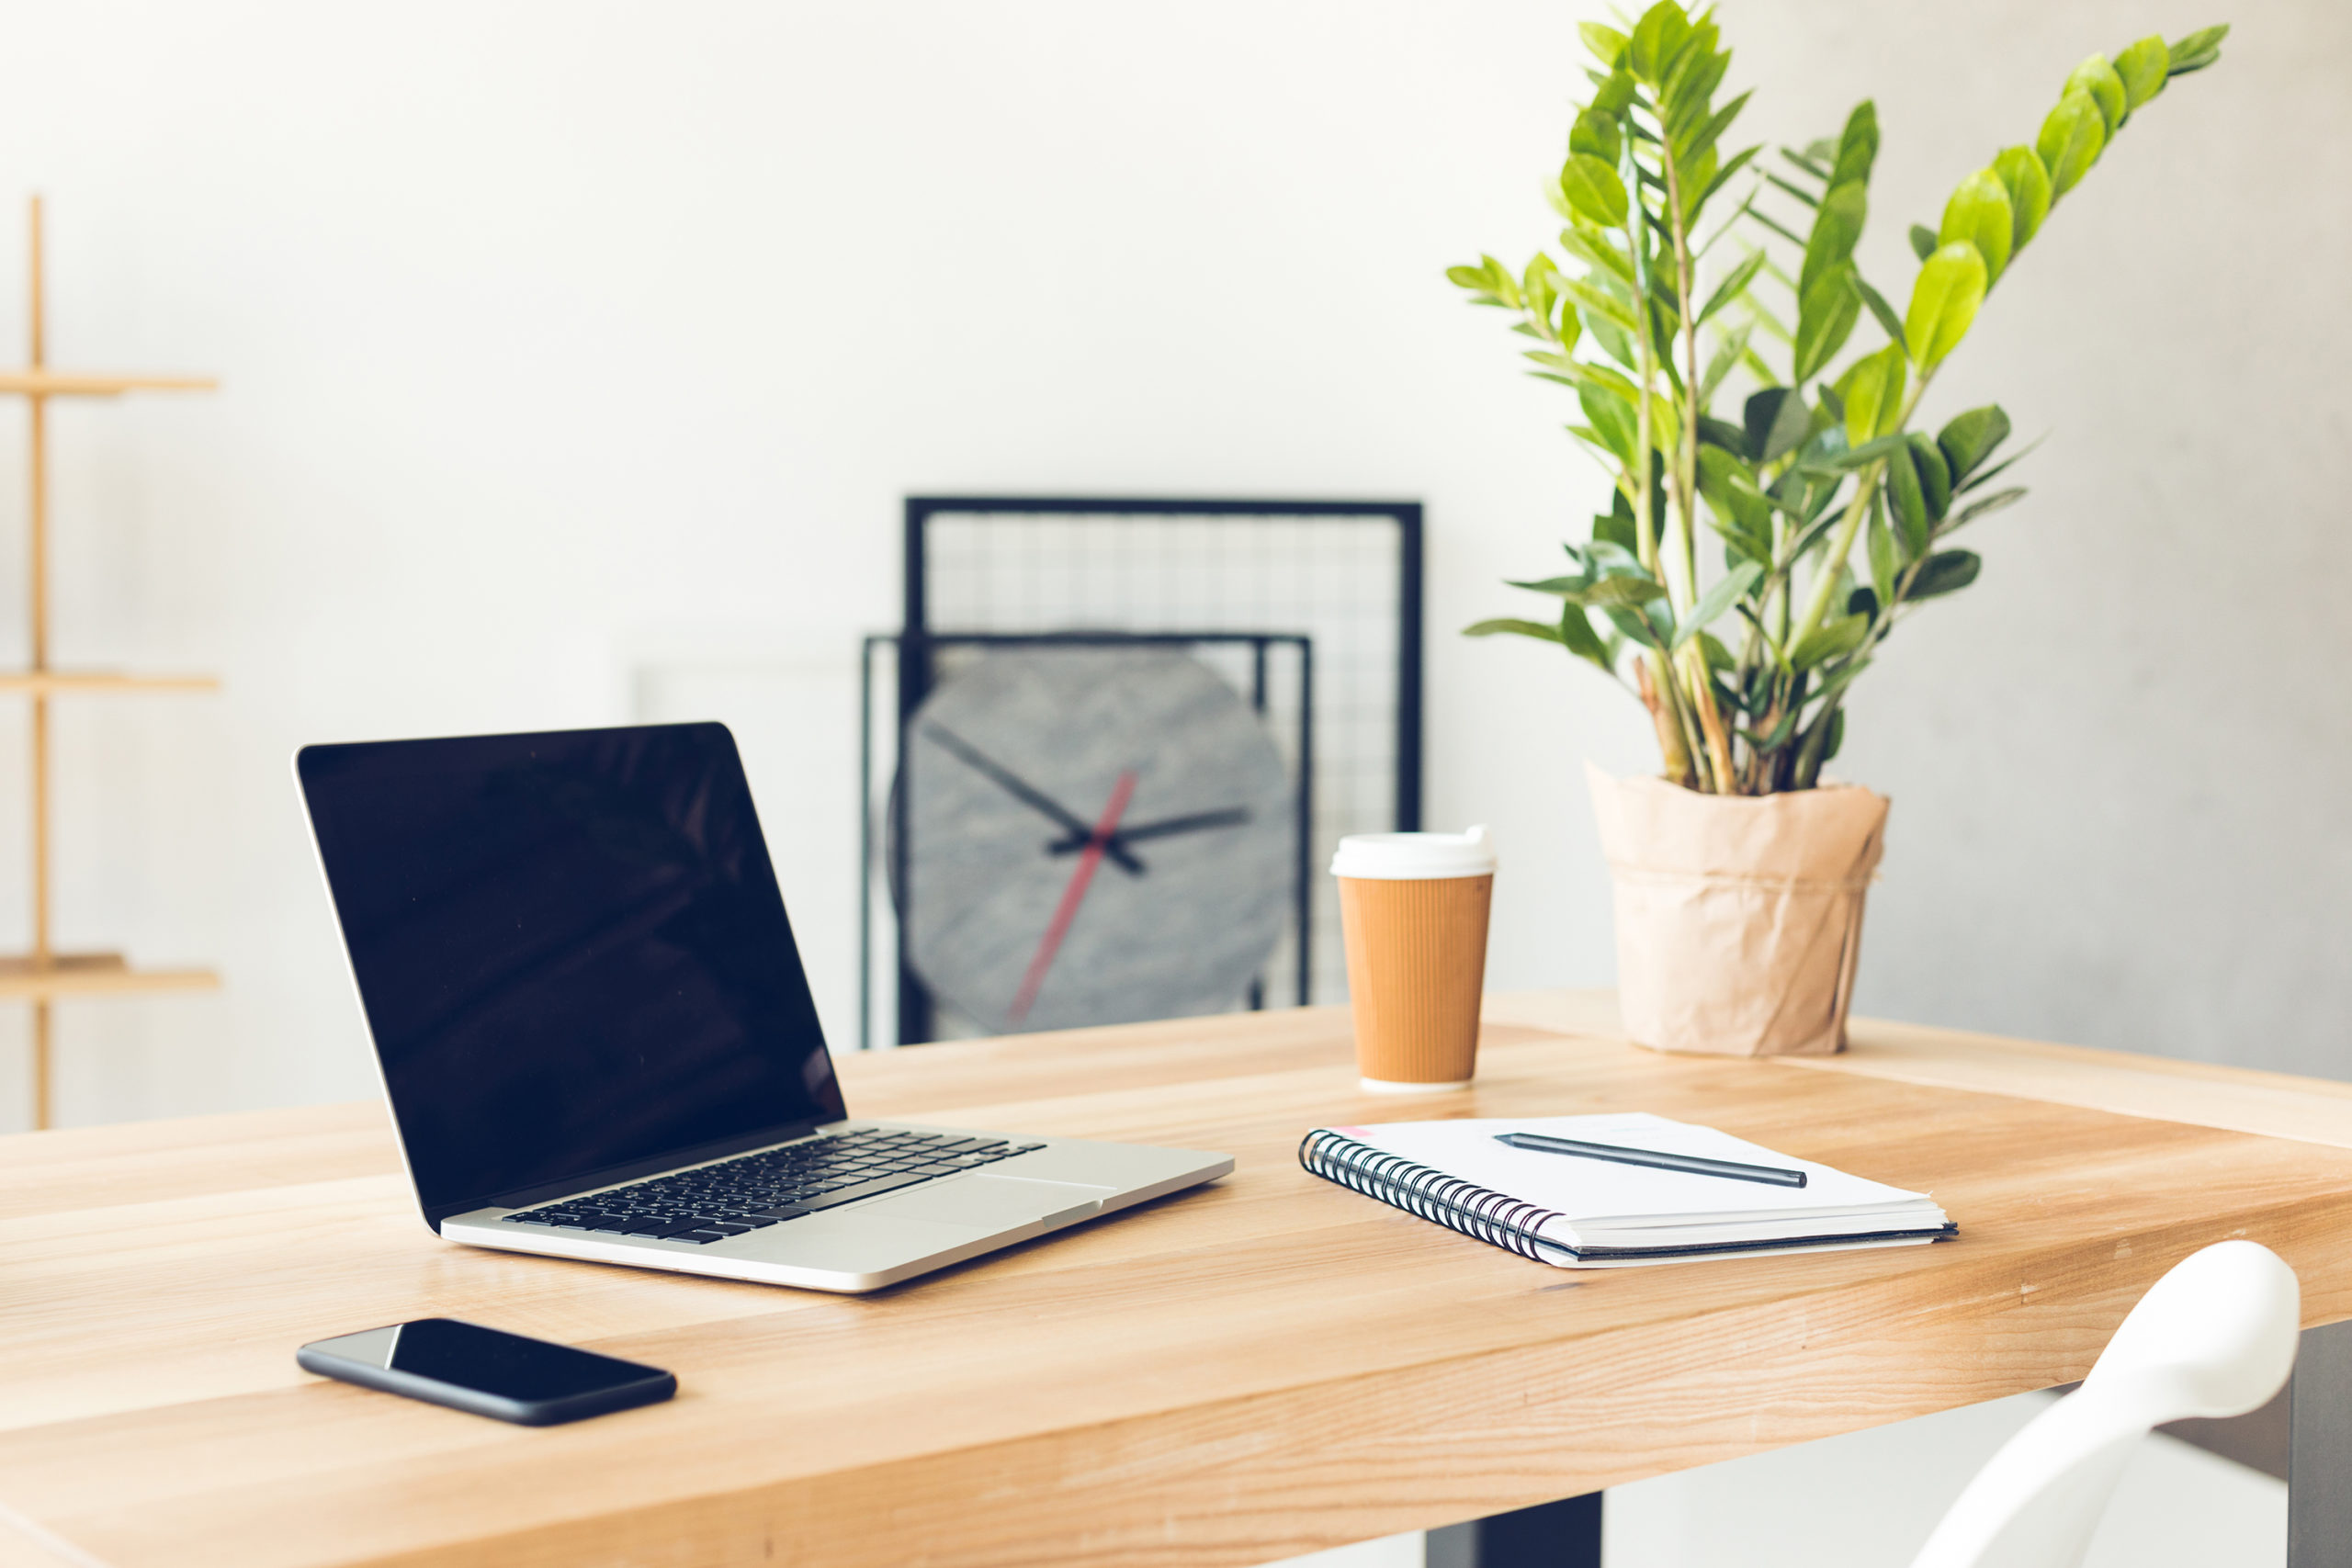 diy configure a home office space that is functional and separates